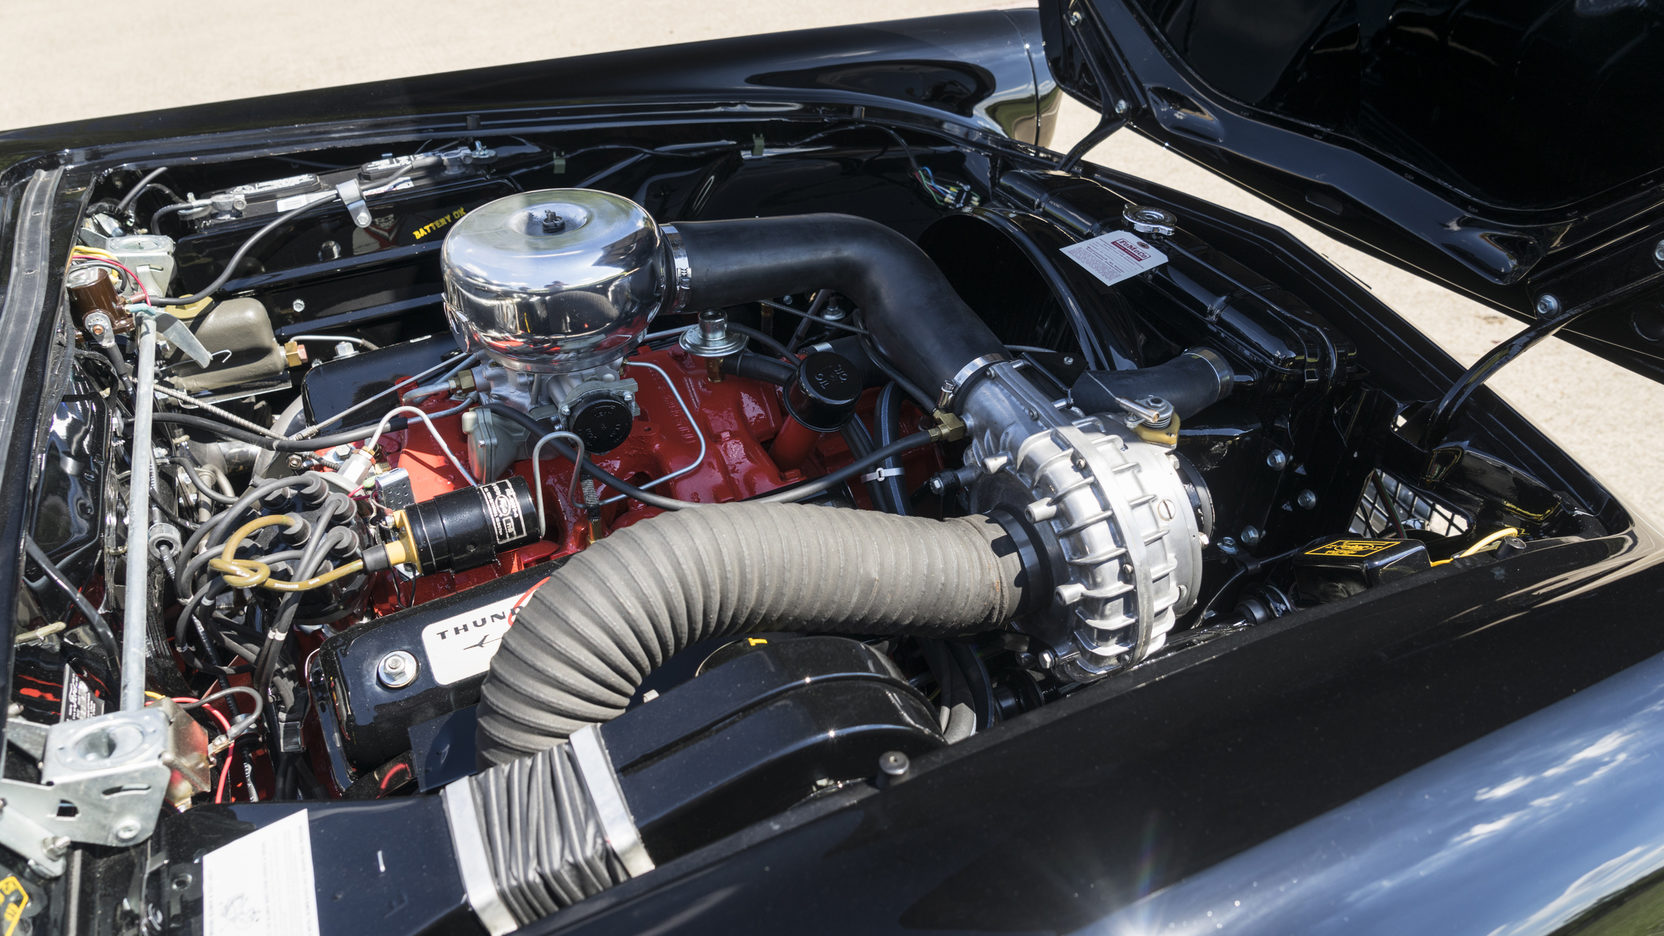 With the Paxton-McCulloch VR57 supercharger the F-Code Ford Thunderbird was capable of around 130mph.